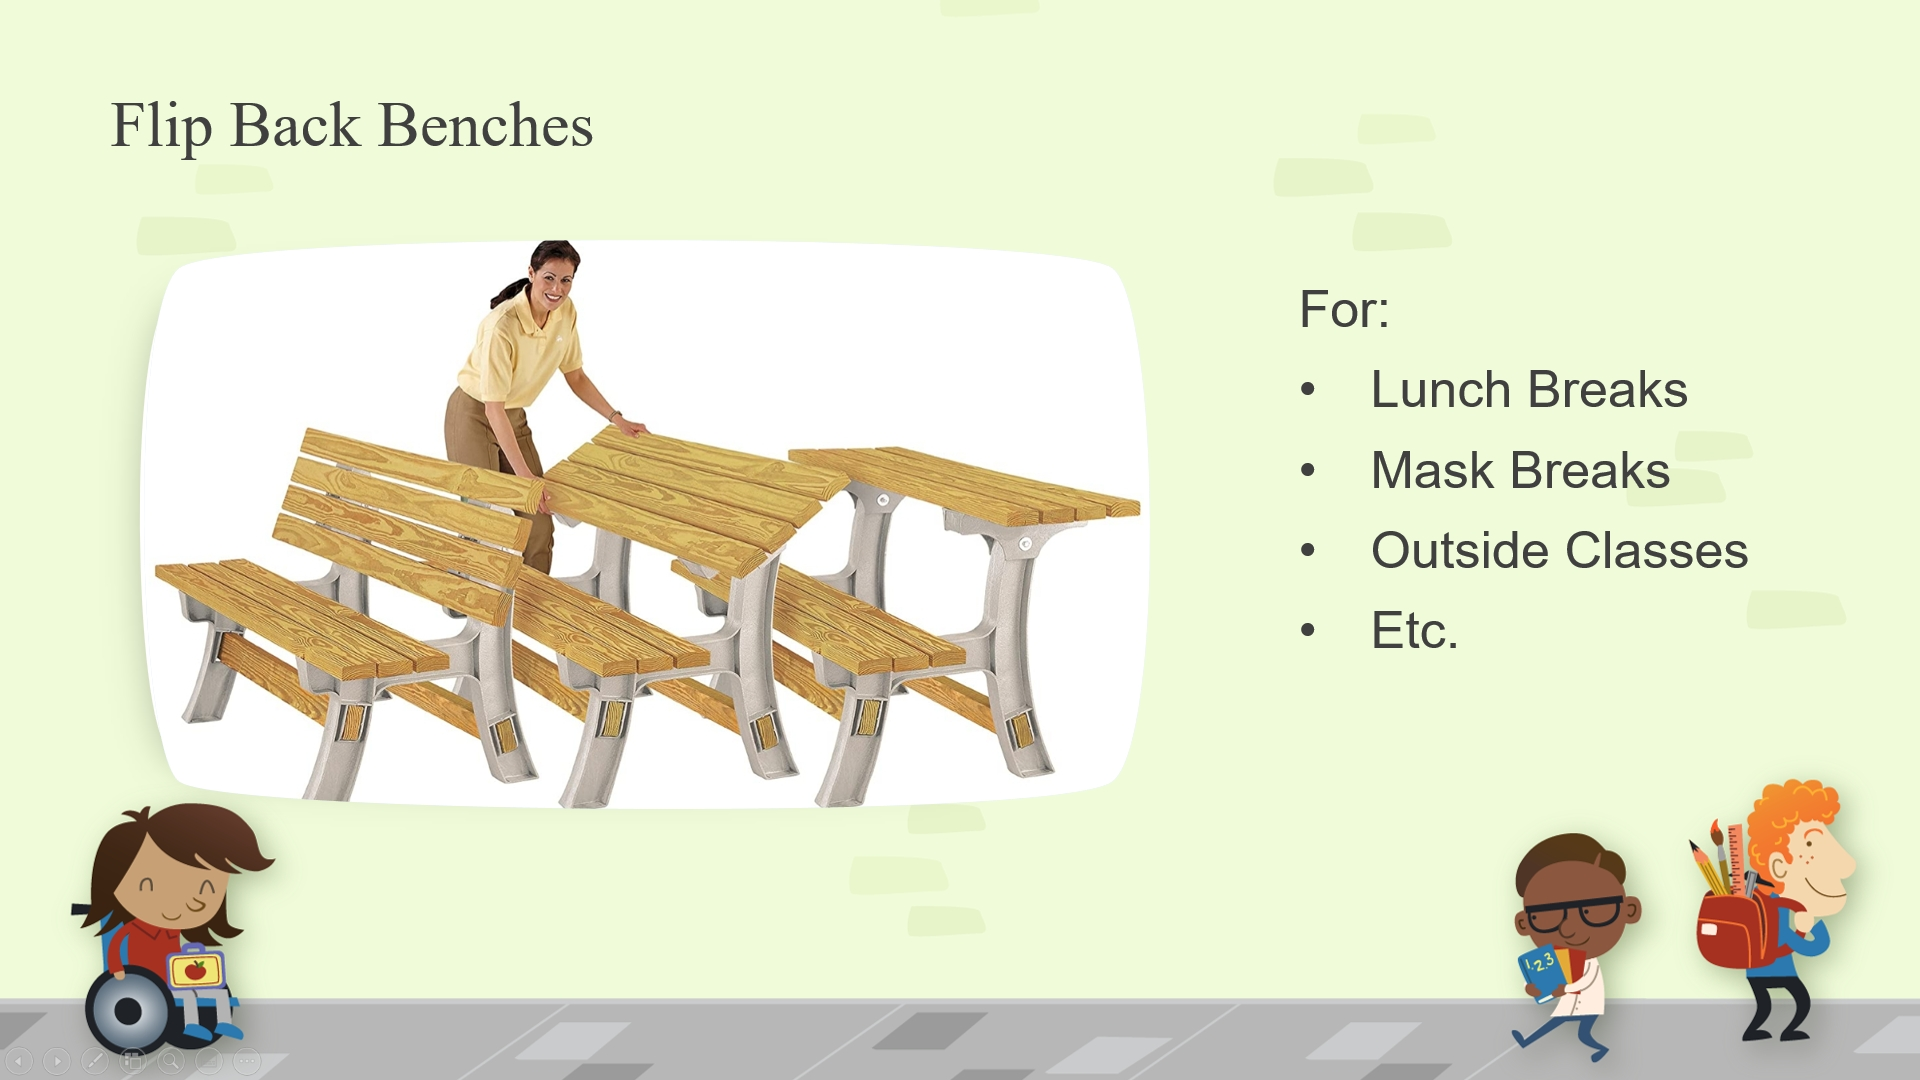 Convertible Benches. A Proposal by Members Suzanne & Ian Rominger